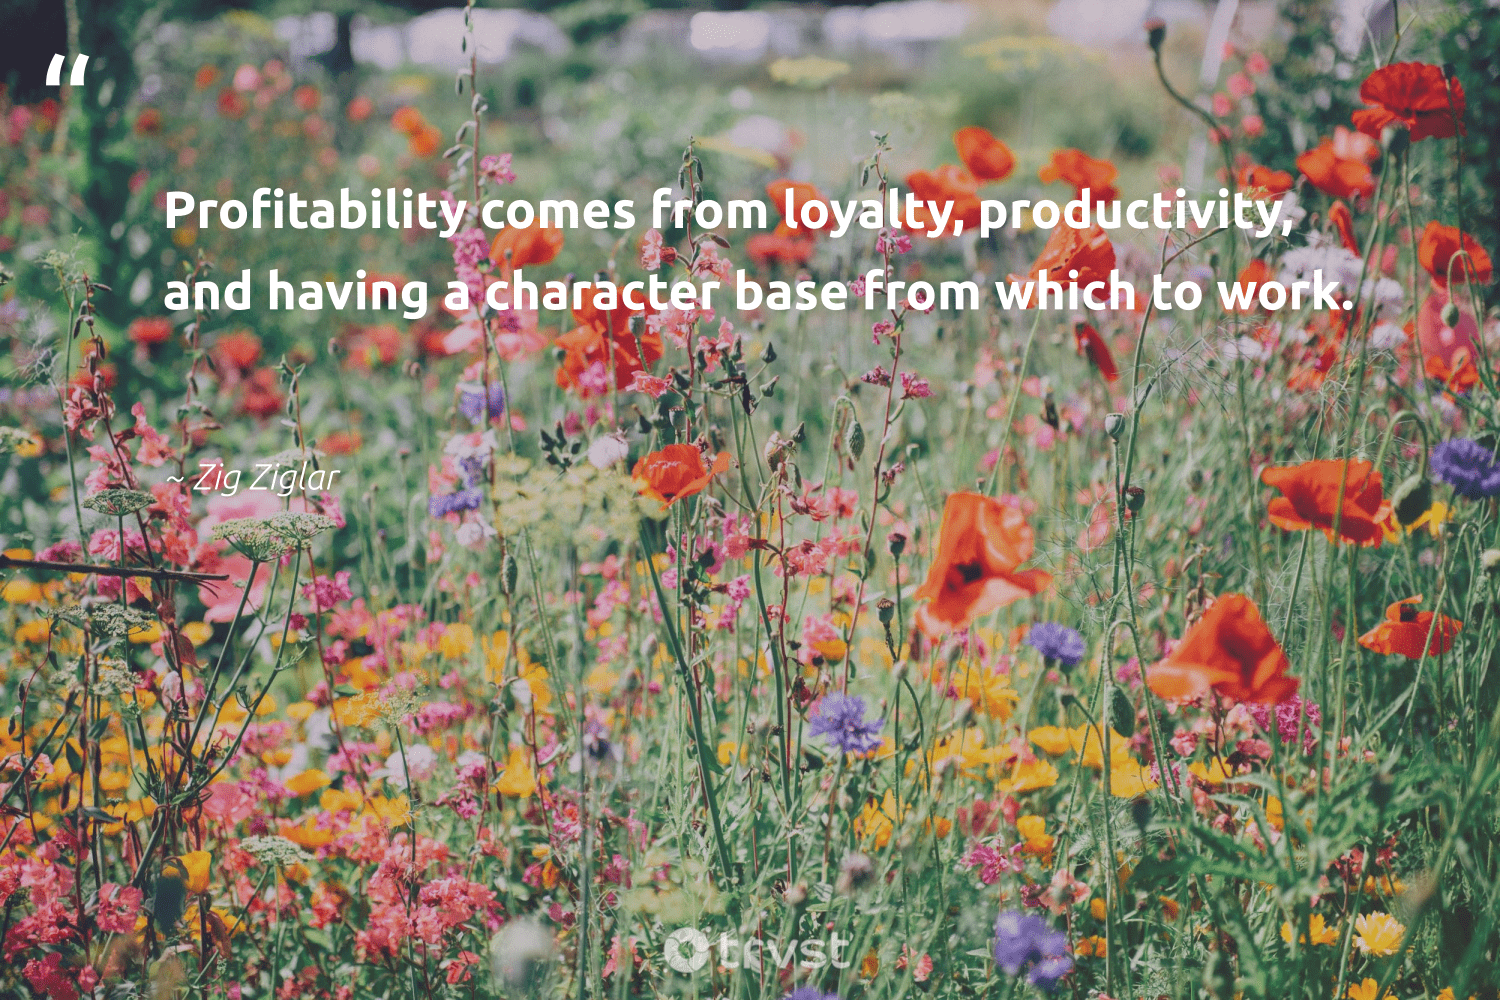 """""""Profitability comes from loyalty, productivity, and having a character base from which to work.""""  - Zig Ziglar #trvst #quotes #productivity #timemanagement #grow #futureofwork #beinspired #motivational #develop #nevergiveup #planetearthfirst #focus"""